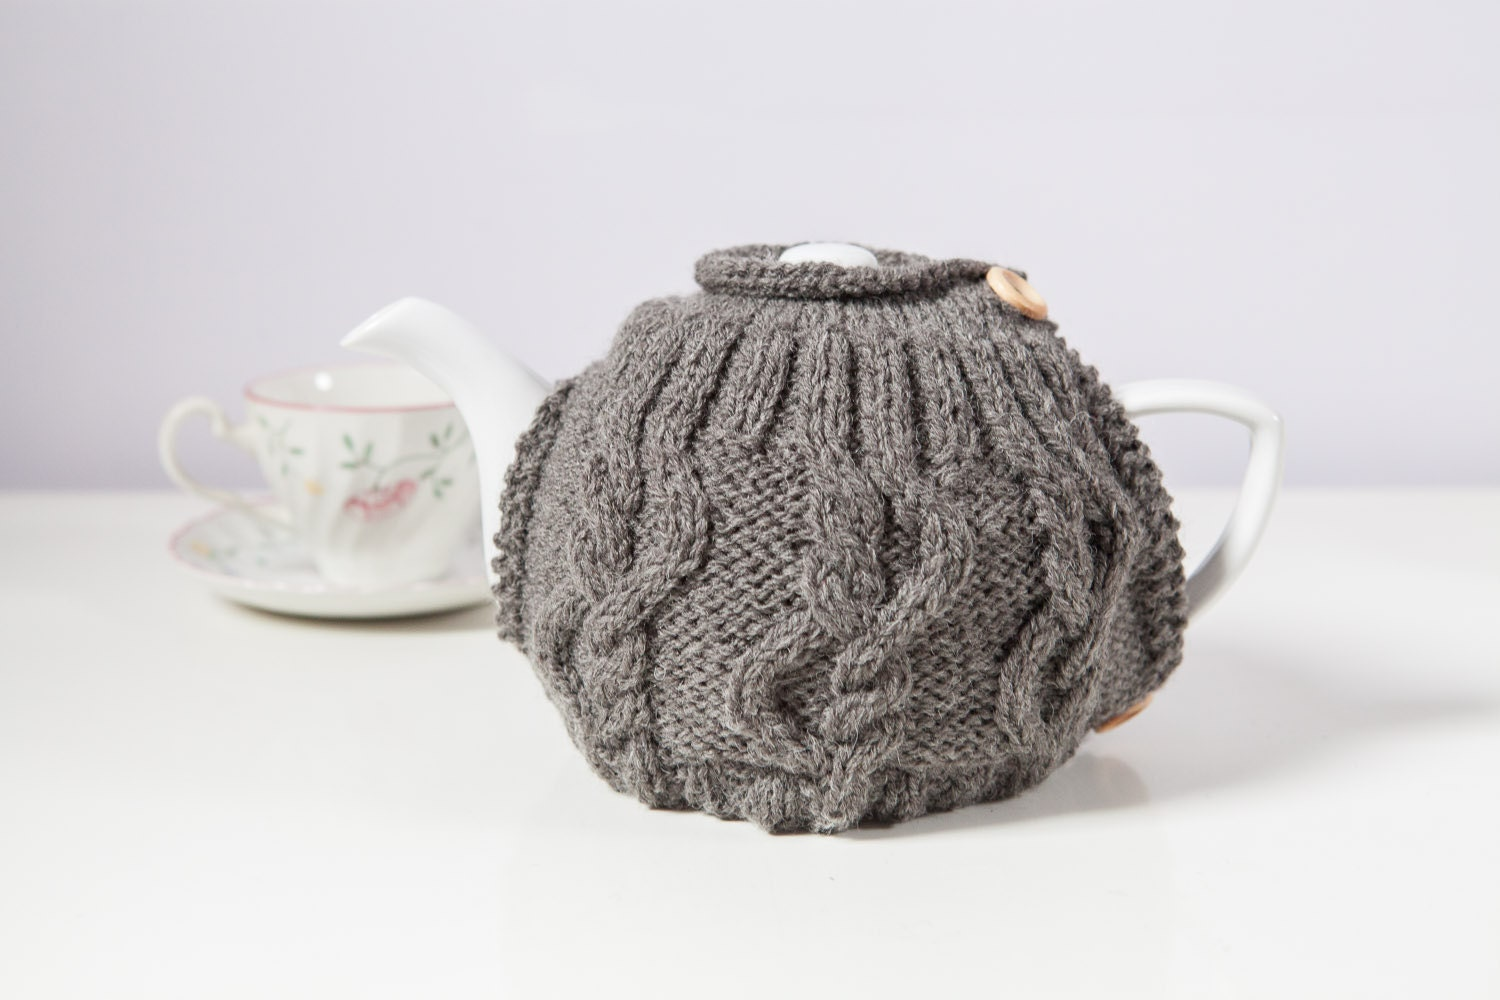 Hand Knitted Tea Cosy Patterns : Grey hand knit tea cosy Teapot cosy Wool tea cosy by SweetMaya